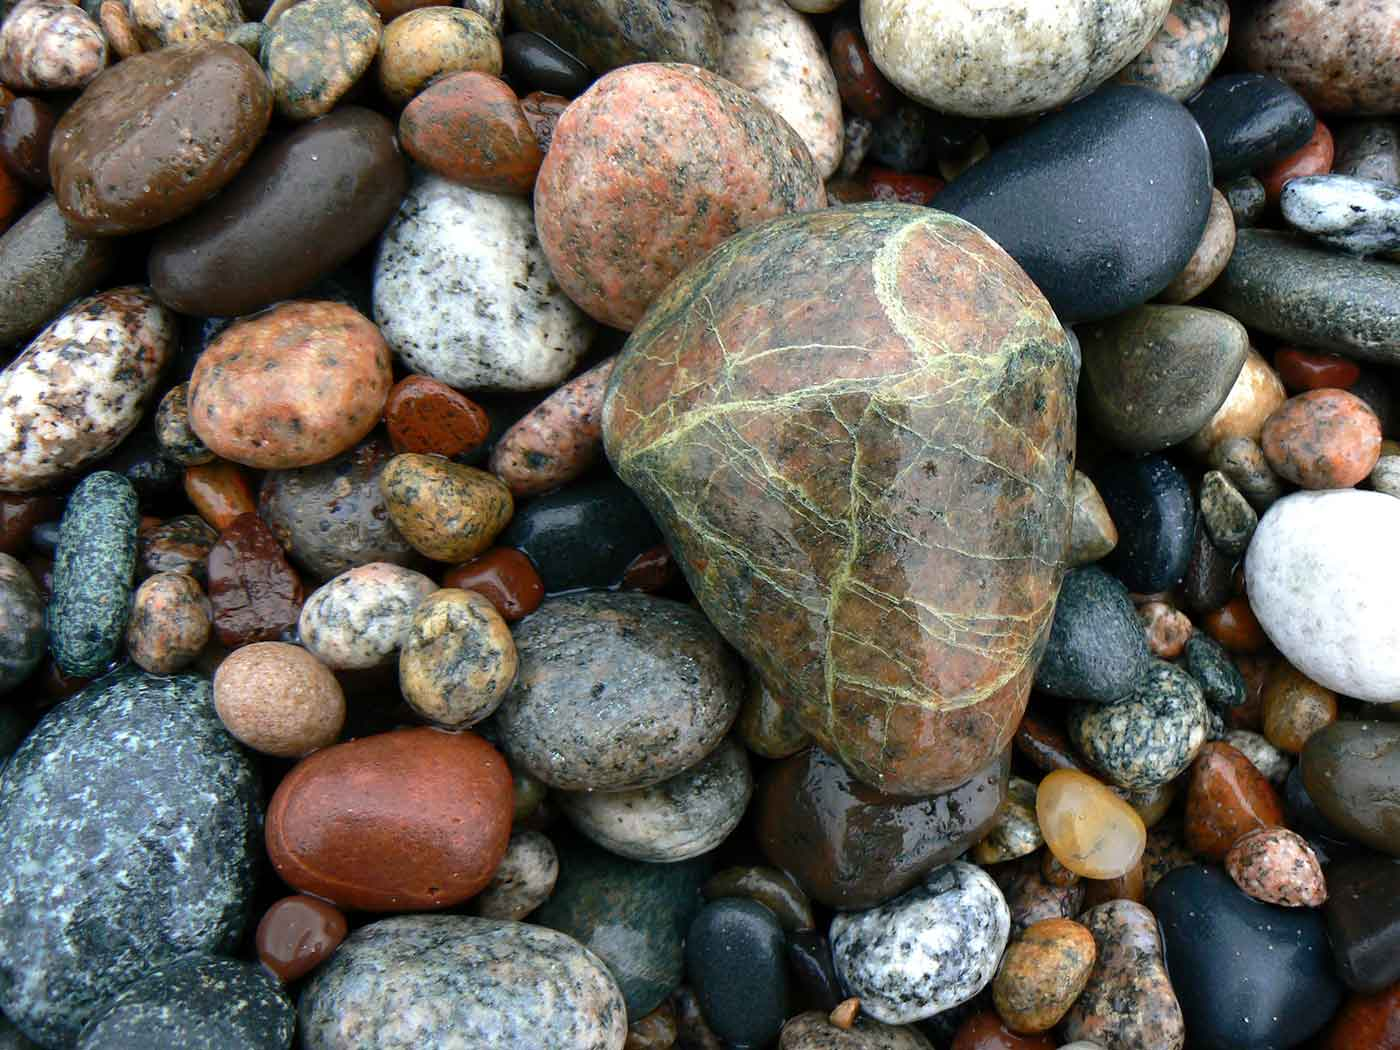 Collection of different beach rocks